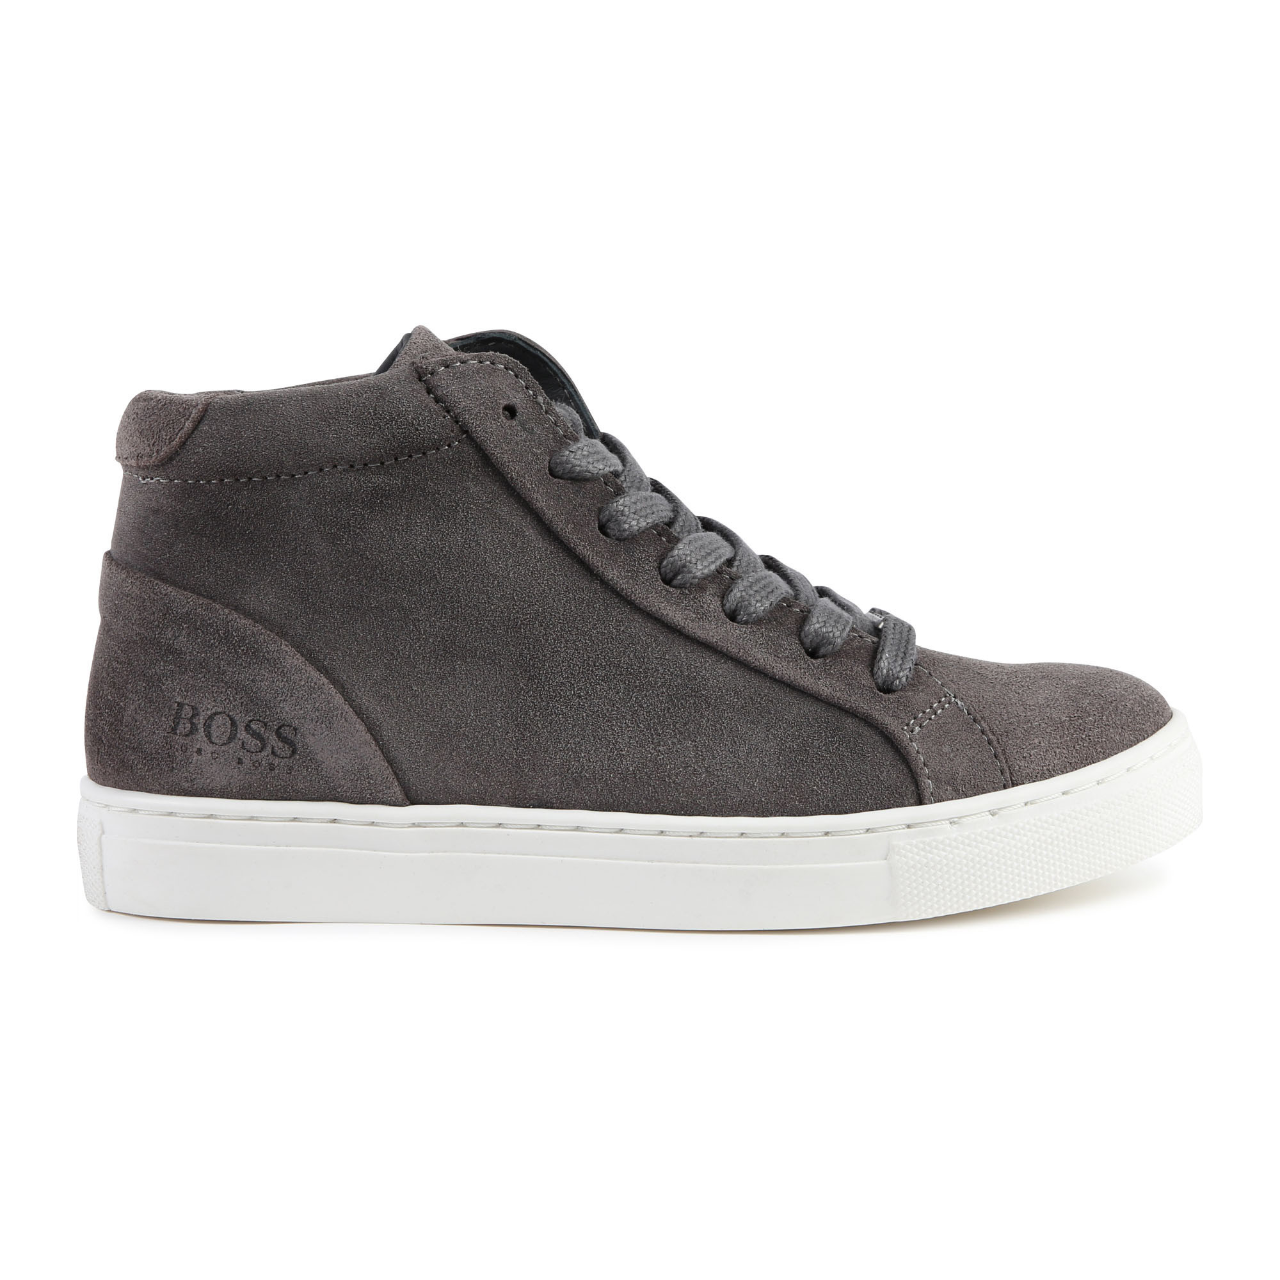 HUGO BOSS SNEAKERS J29190